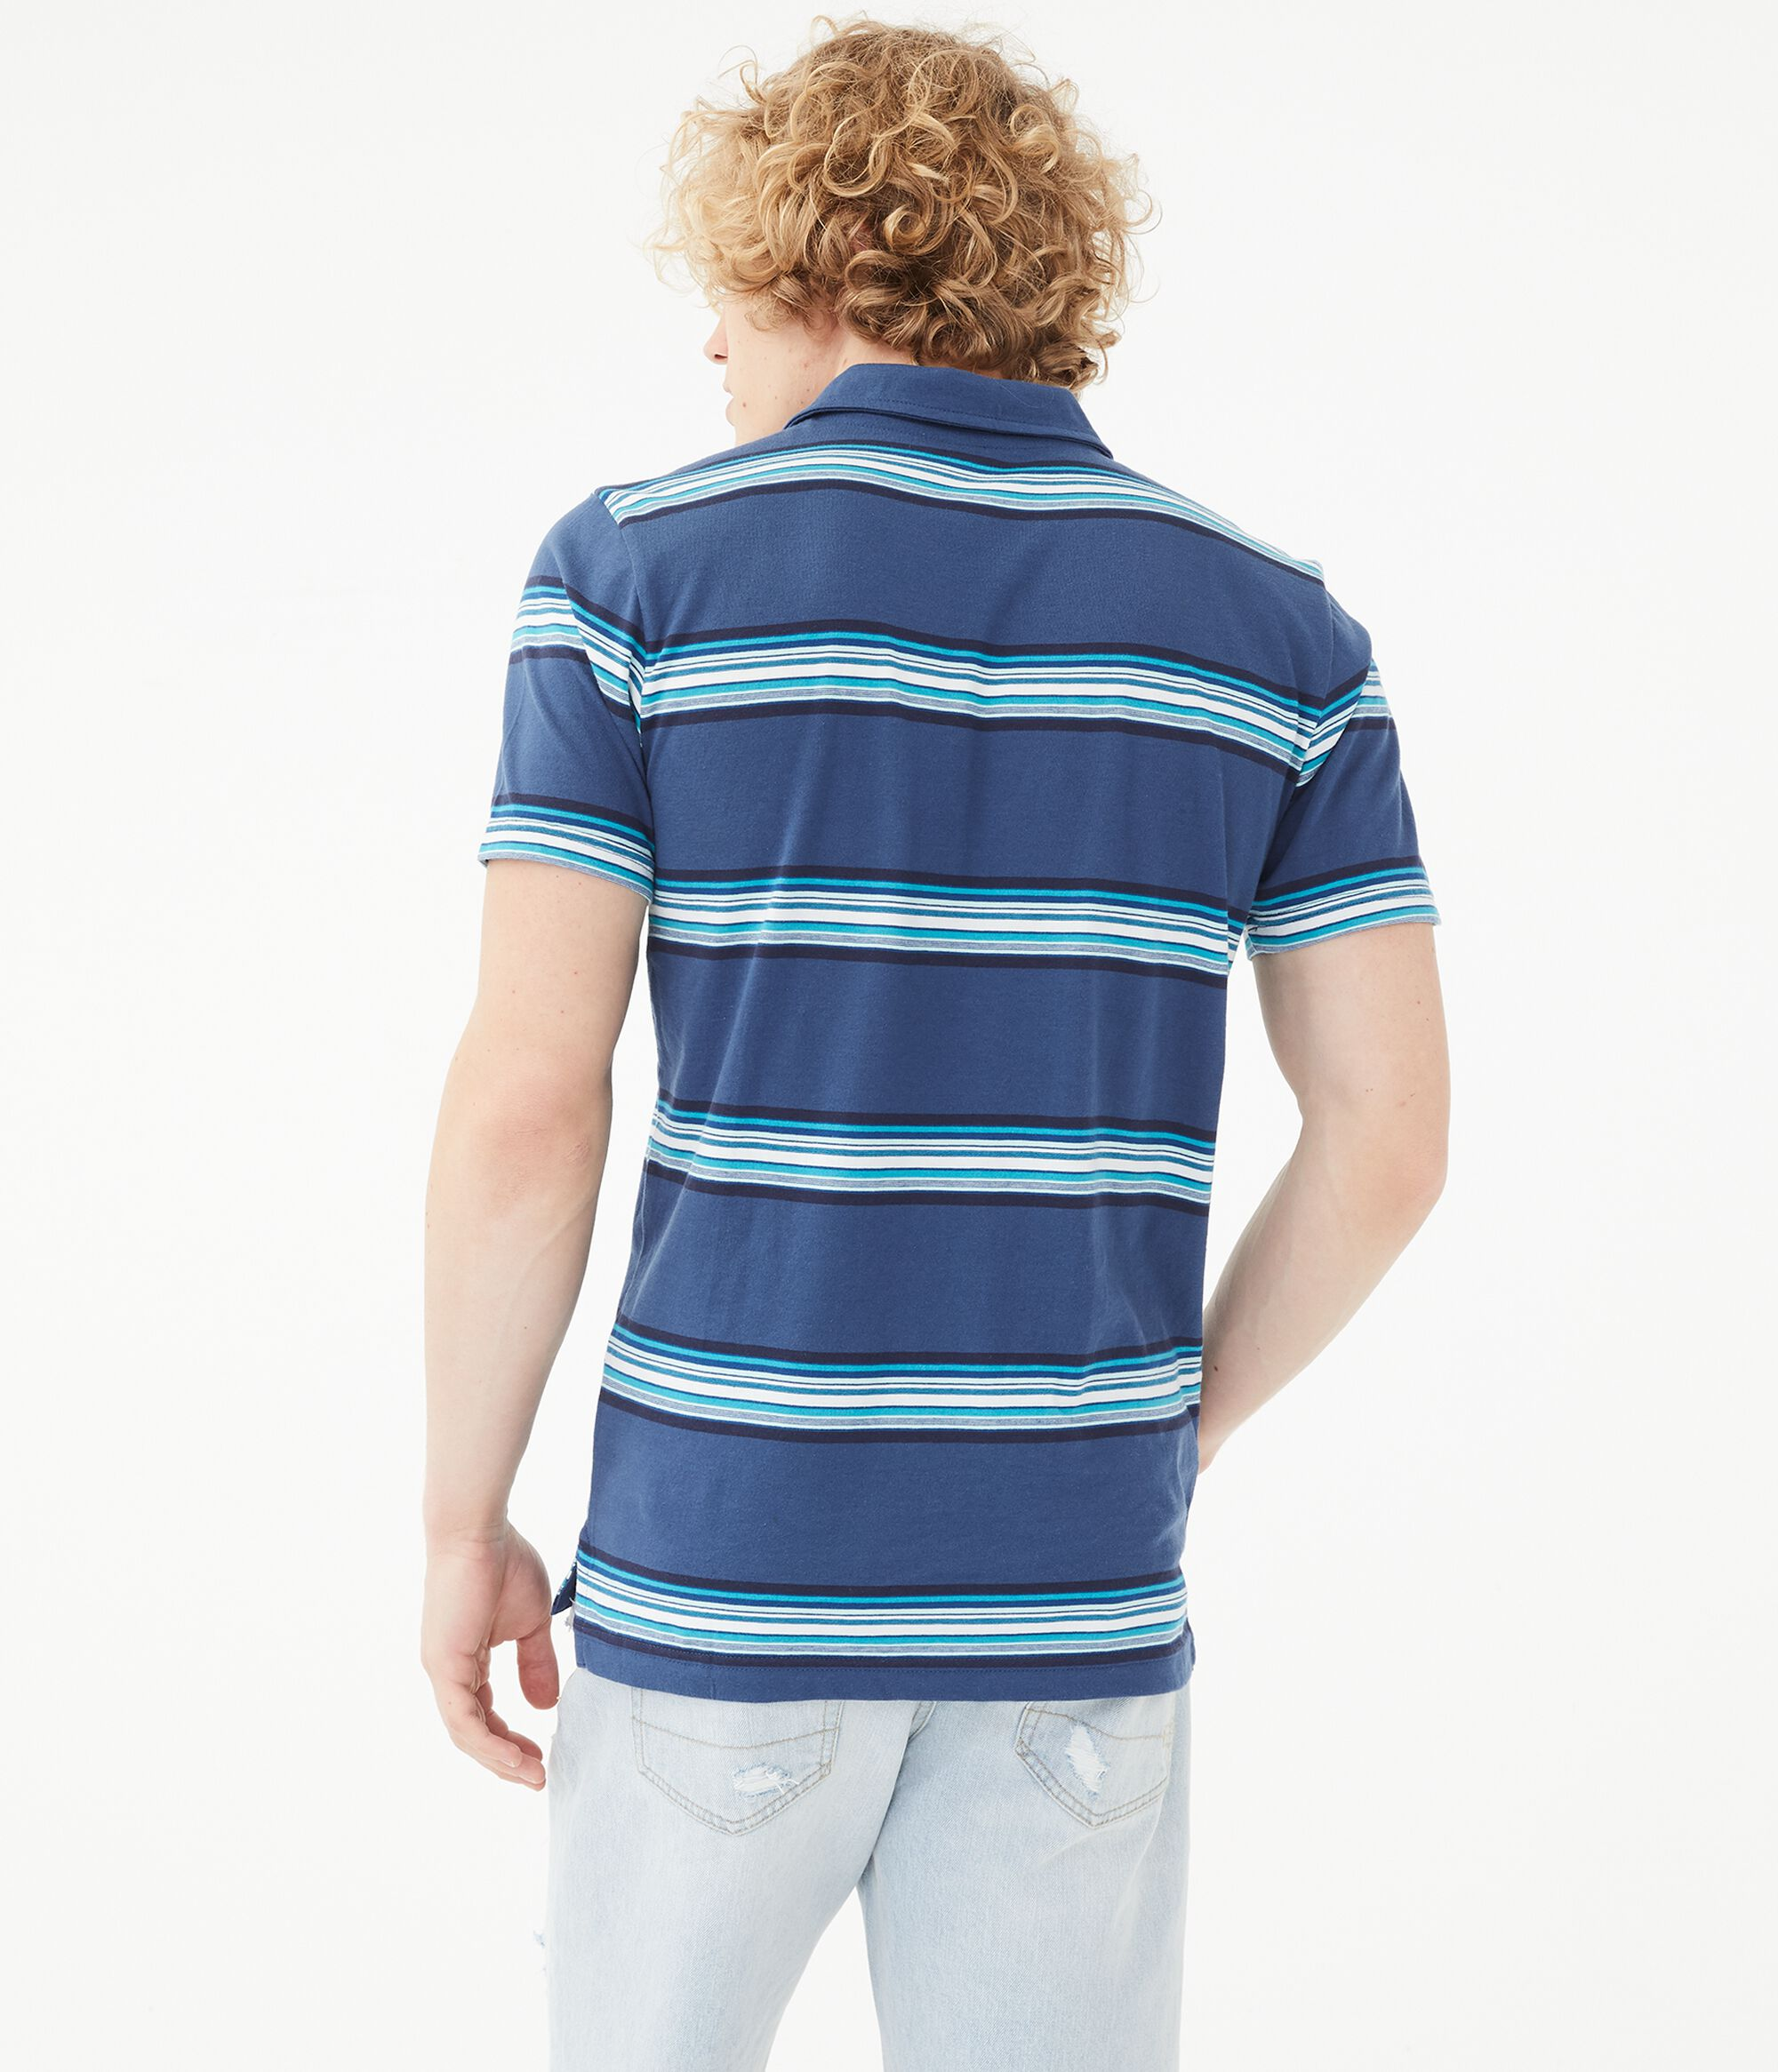 f NWT AEROPOSTALE embroidered Jersey Striped Polo